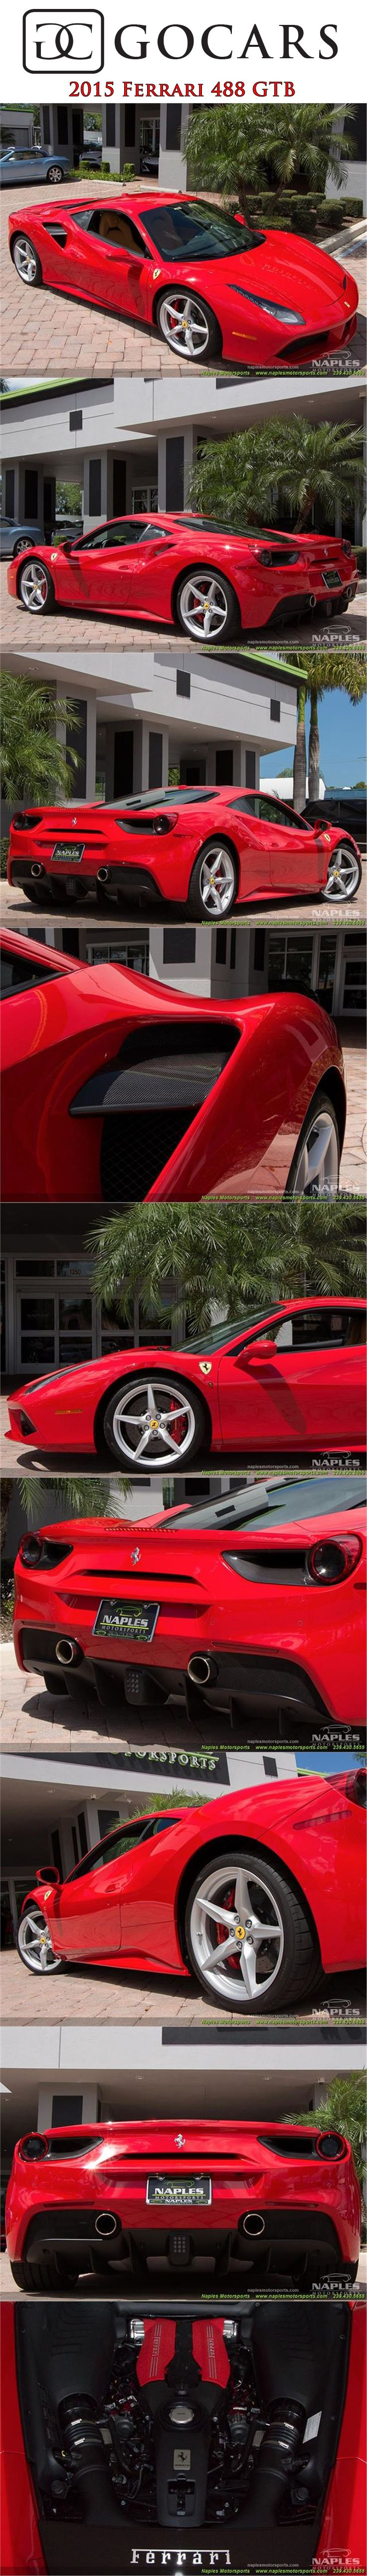 2017 Ferrari 488 GTB for sale on GoCars Rosso Corsa (Red) / Beige Leather Interior - 3.9L V8 Twin-Turbocharged - 661hp @ 8,000rpm - 561ft-lbs @ 3,000rpm - Automated Double Clutch Transmission (F1) - Only 702 miles! #ferrari #ferrari488 #ferrari488gtb #ferrariphotos #sportscars #sportscar #supercars #supercar #luxurycars #gocars